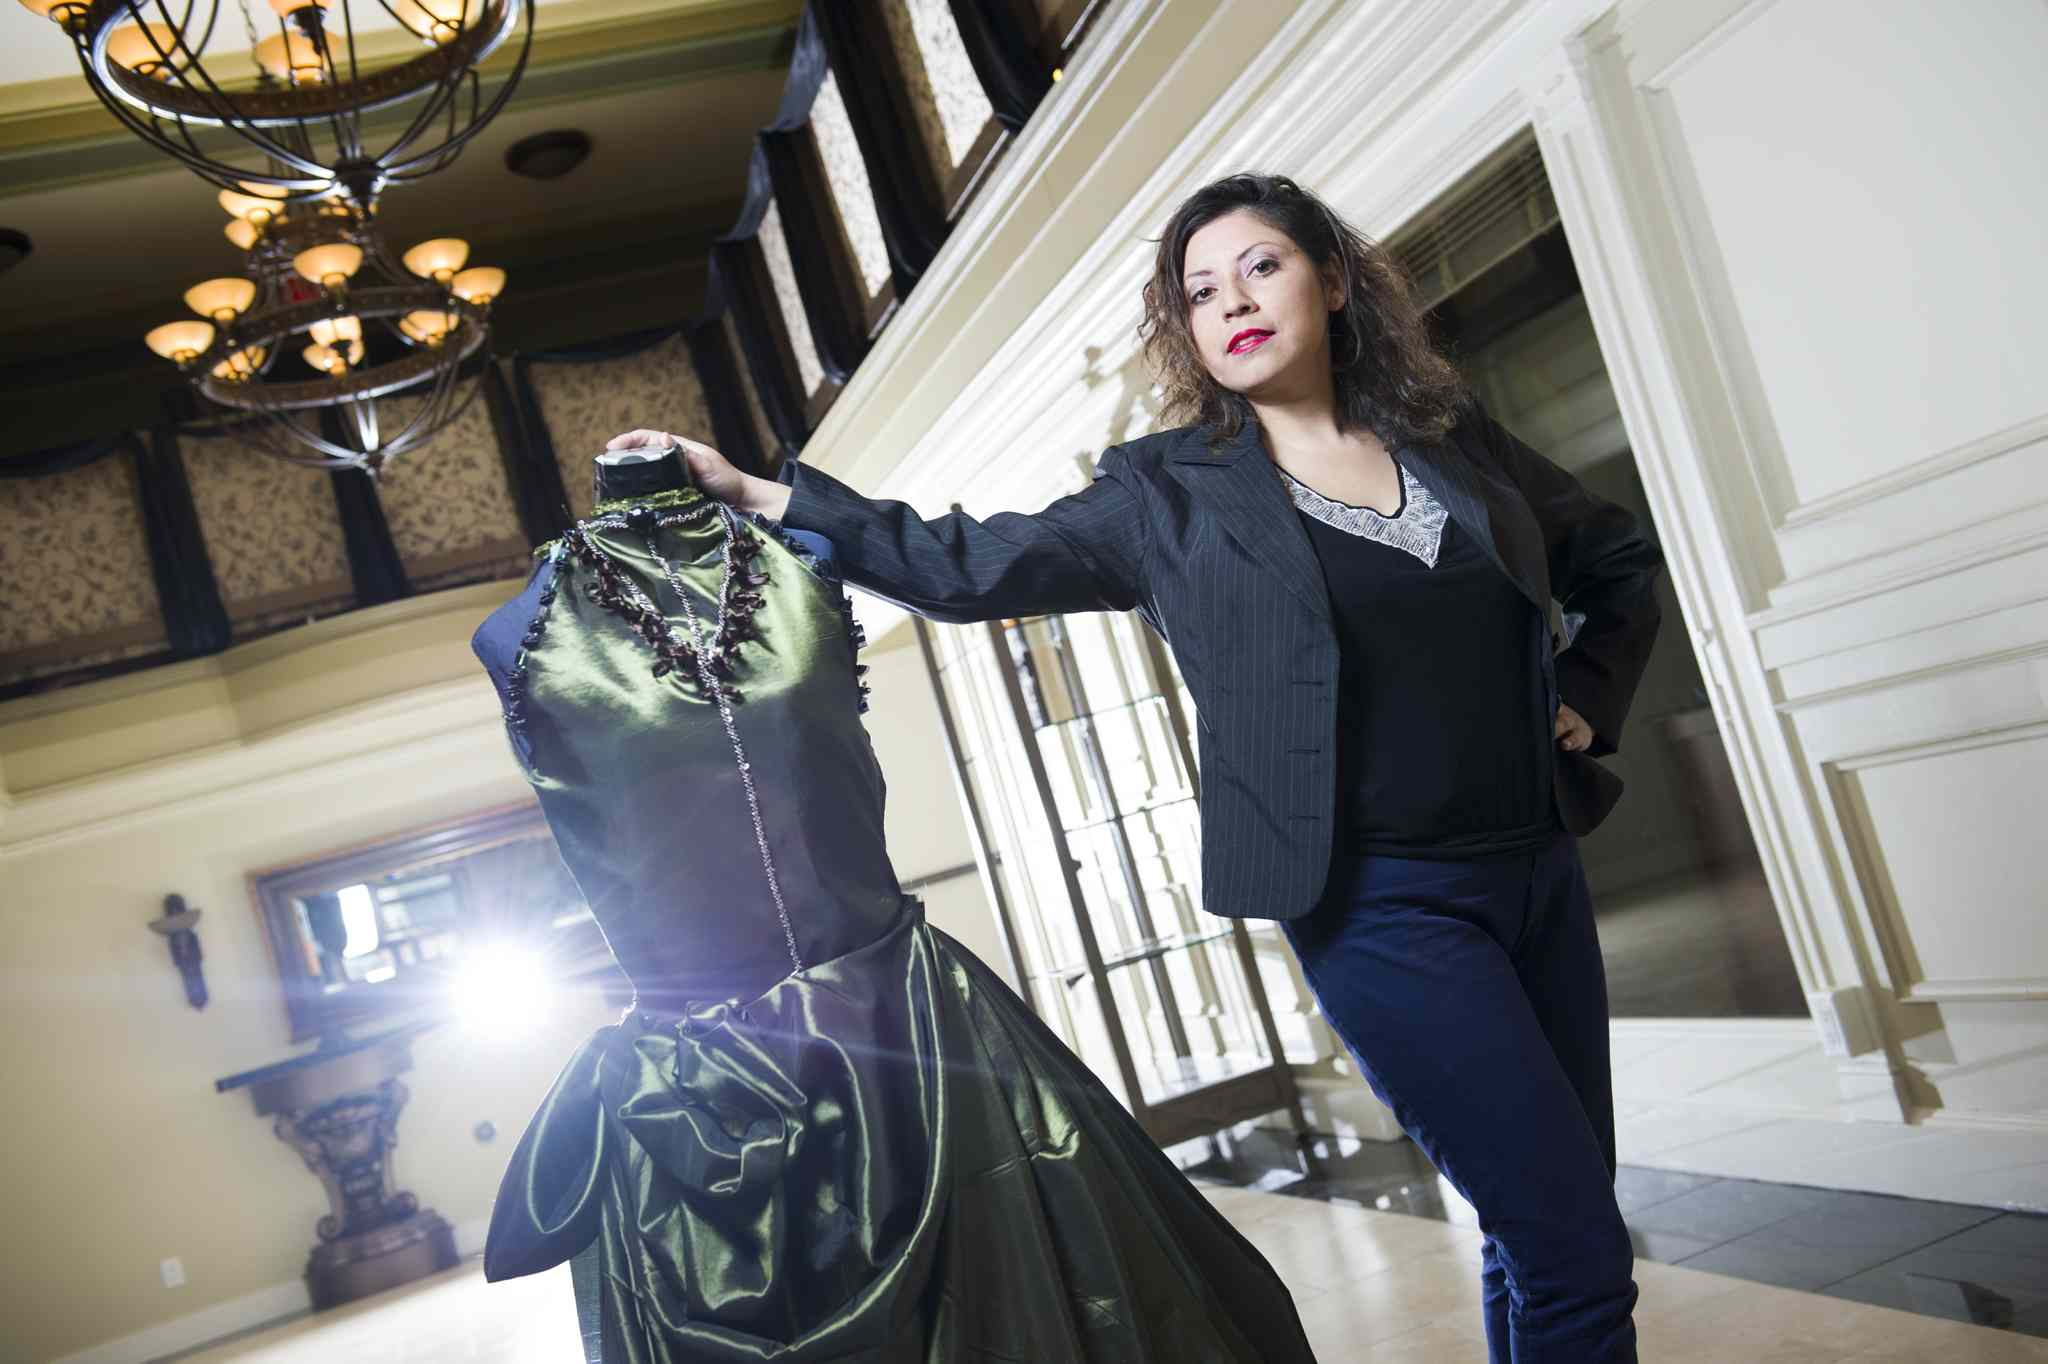 Veronica Davis recently opened a fashion boutique on the main floor of the historic White House building on Portage Avenue.